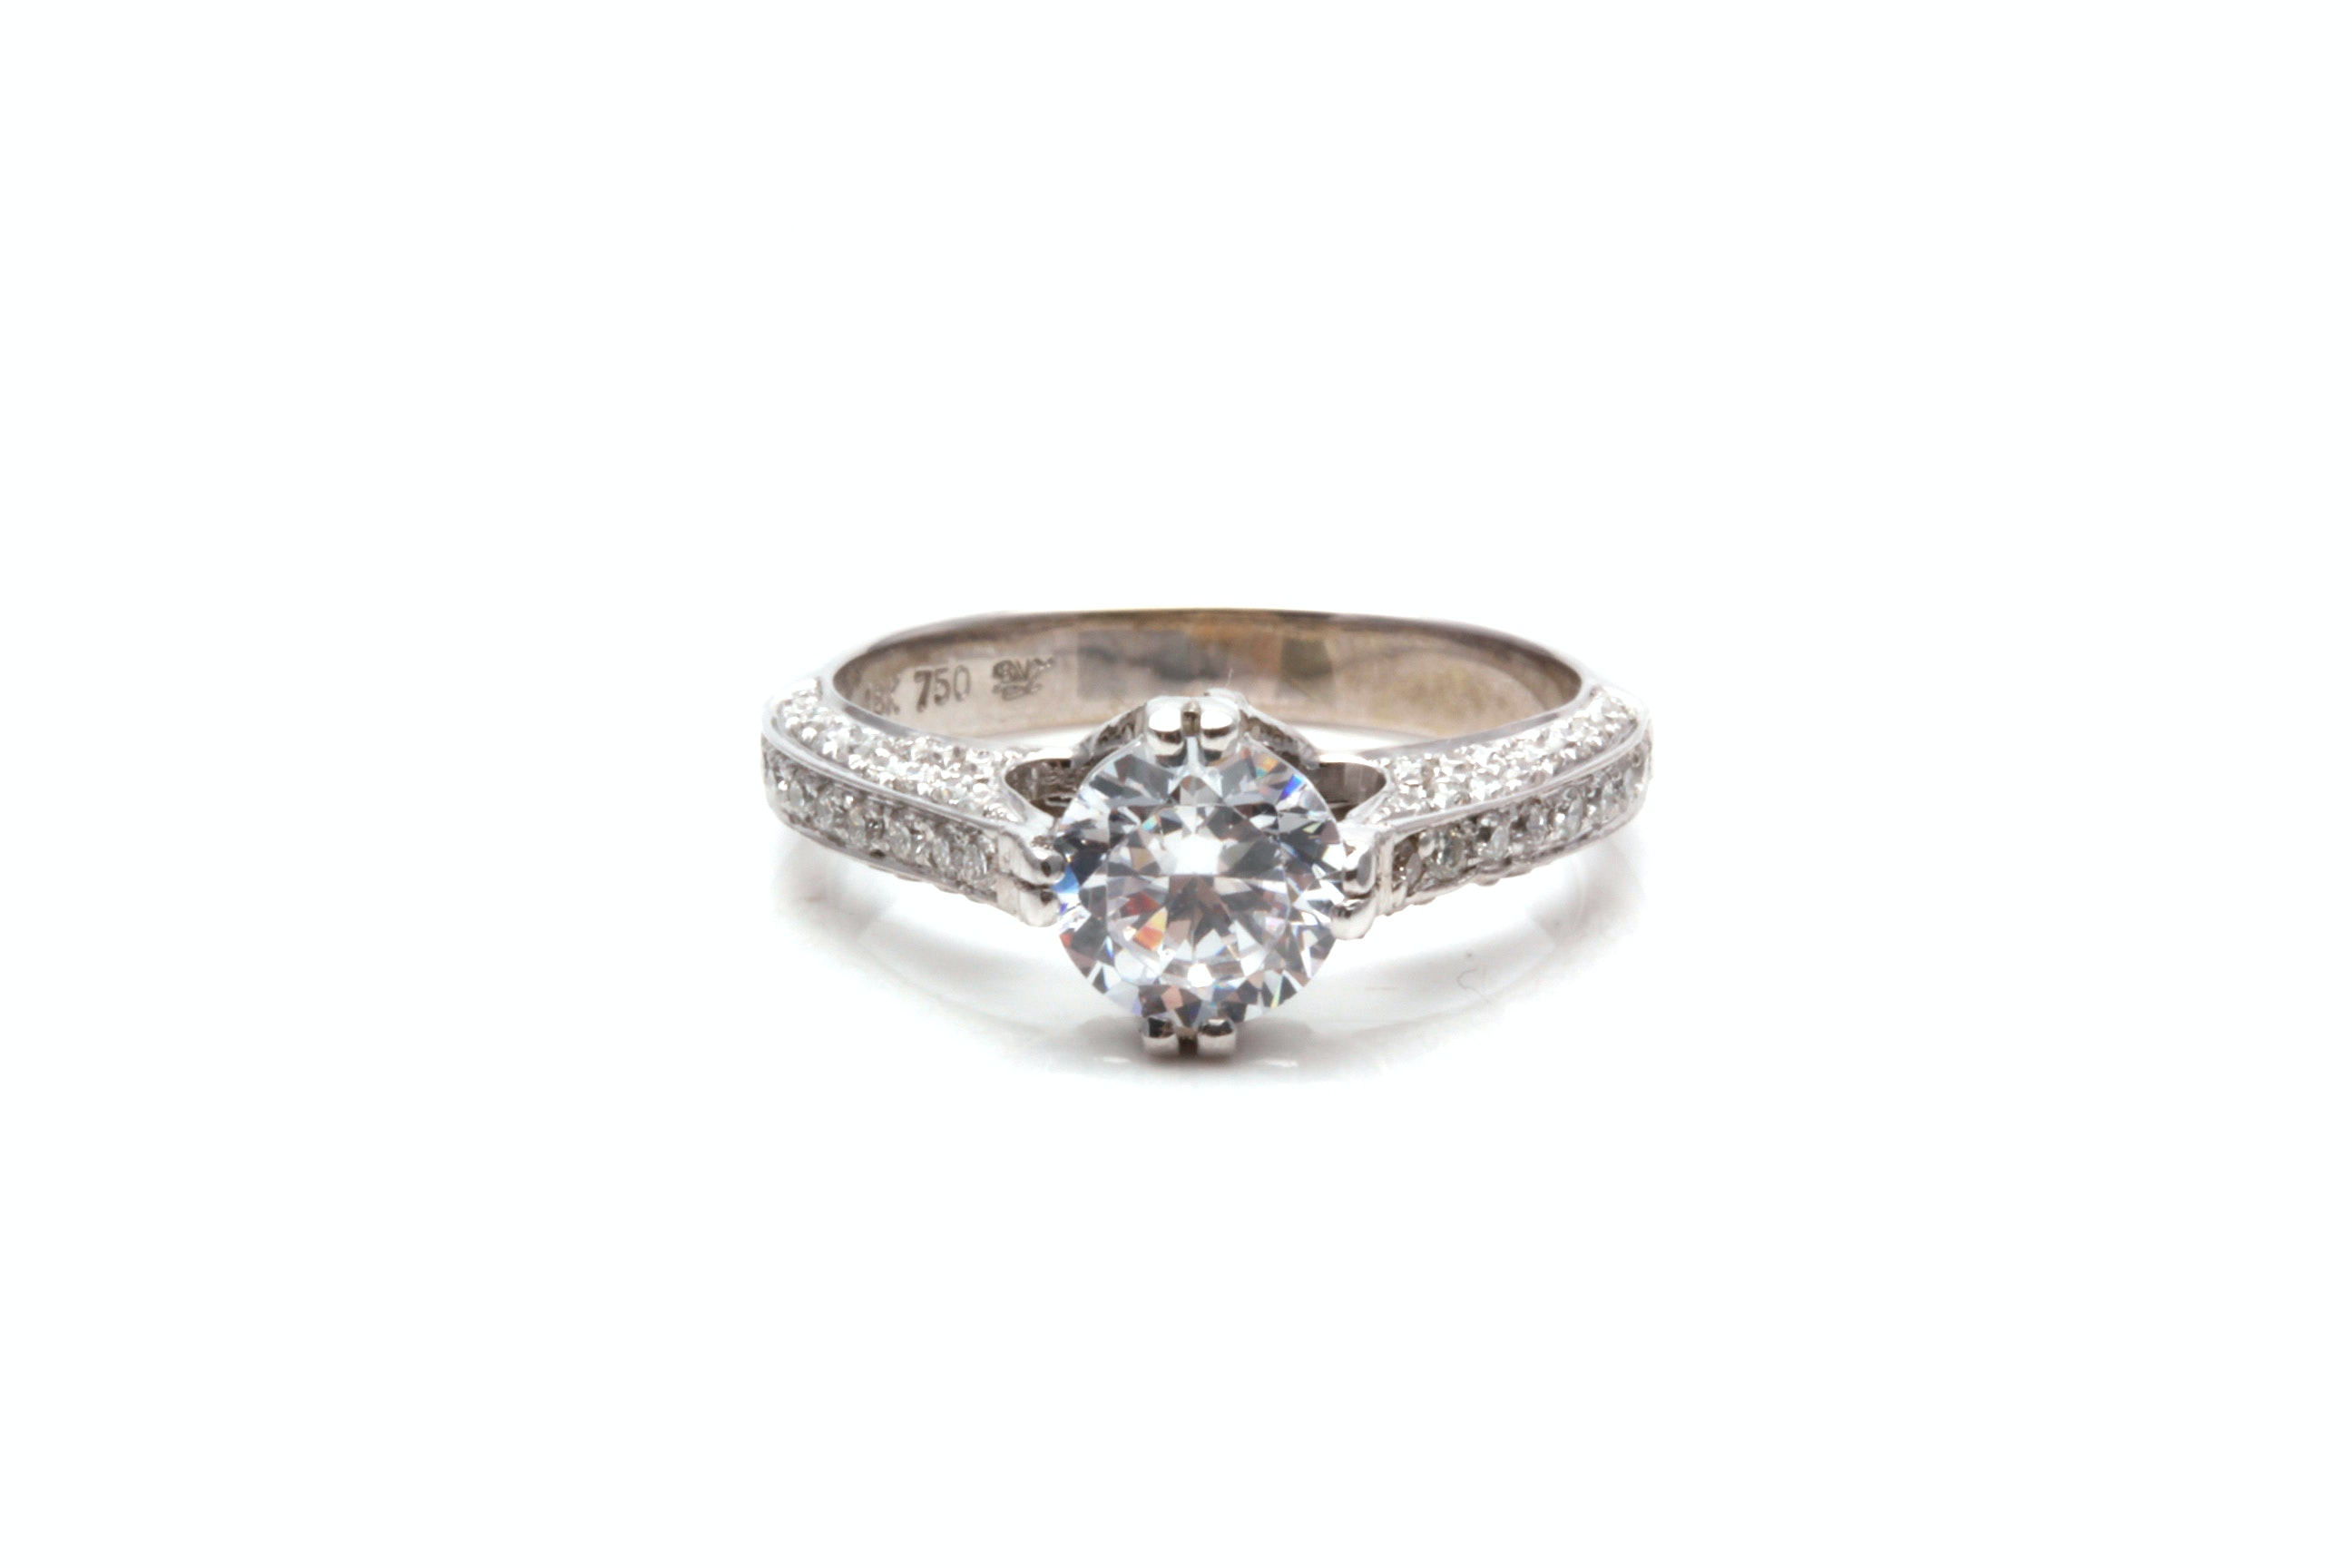 18K White Gold Diamond Semi Mount Ring With Cubic Zirconia